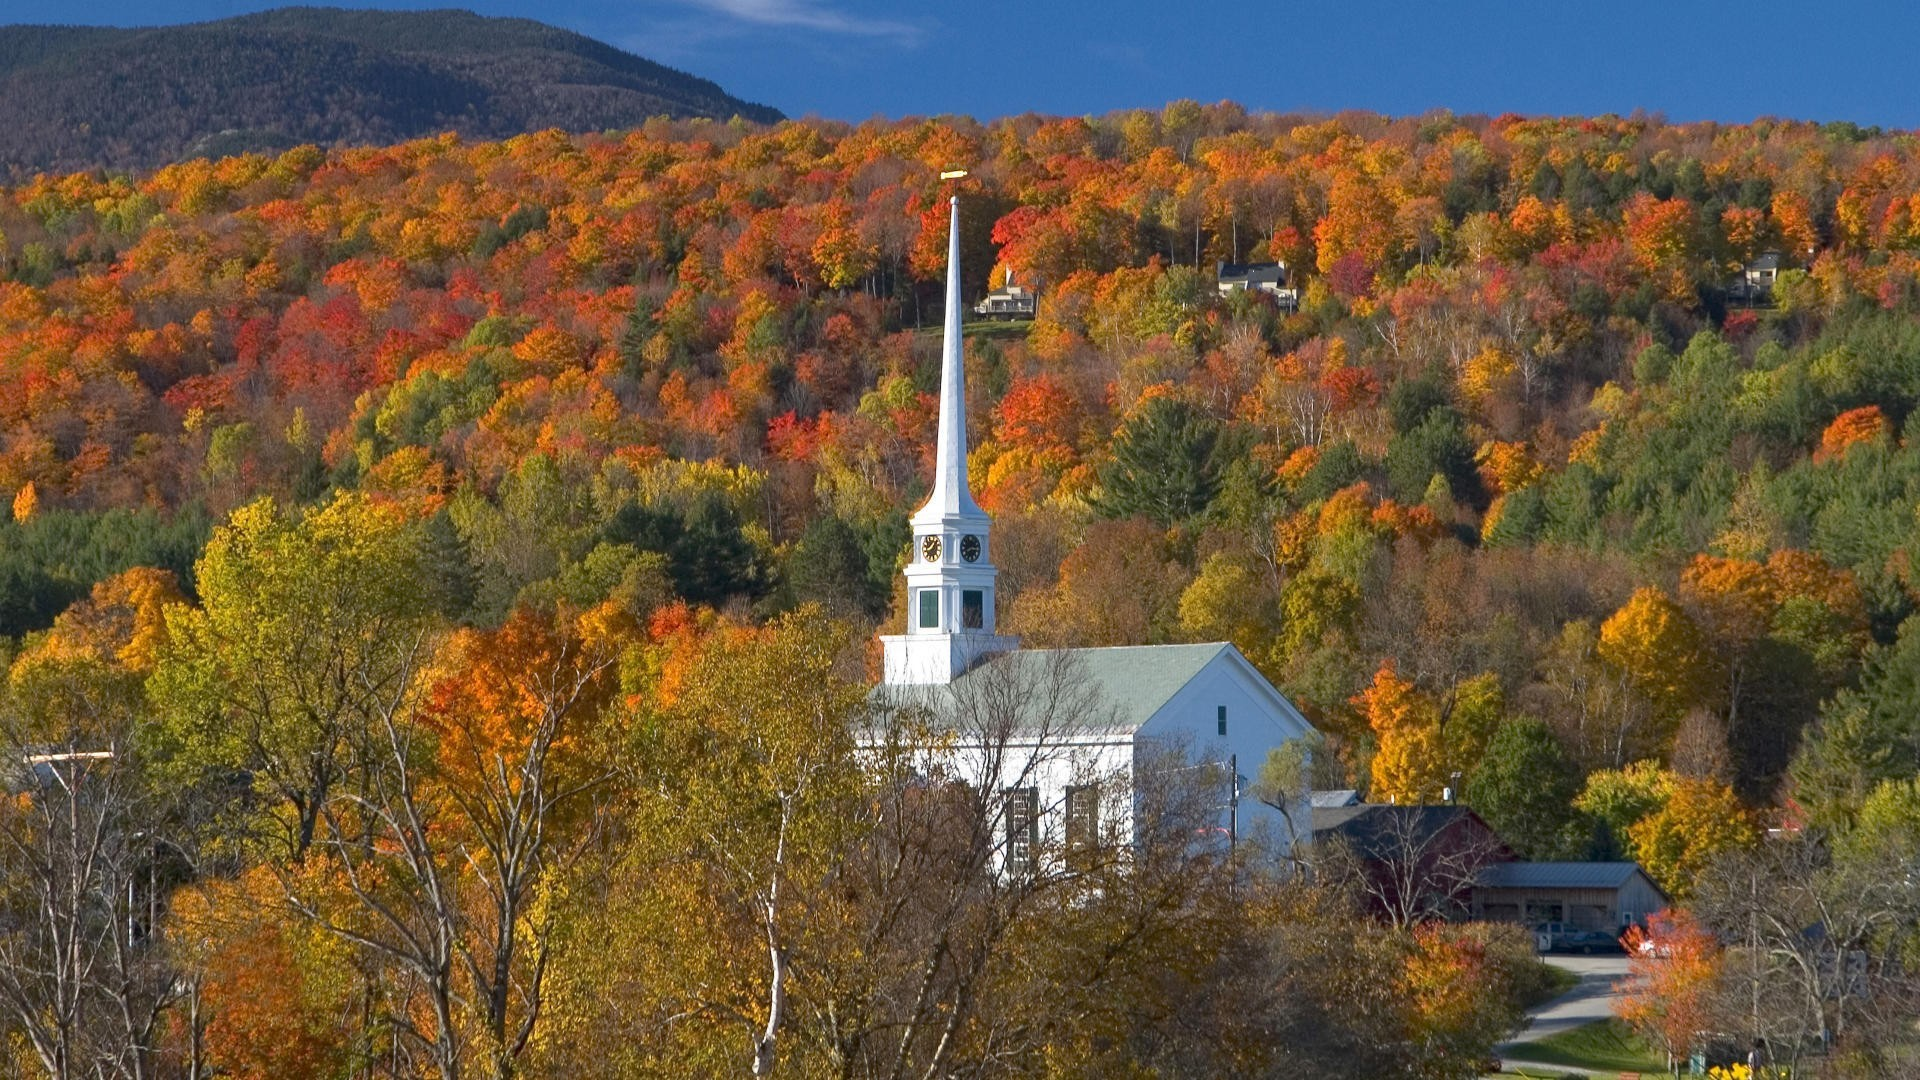 church in stowe vermont wallpaper 426266